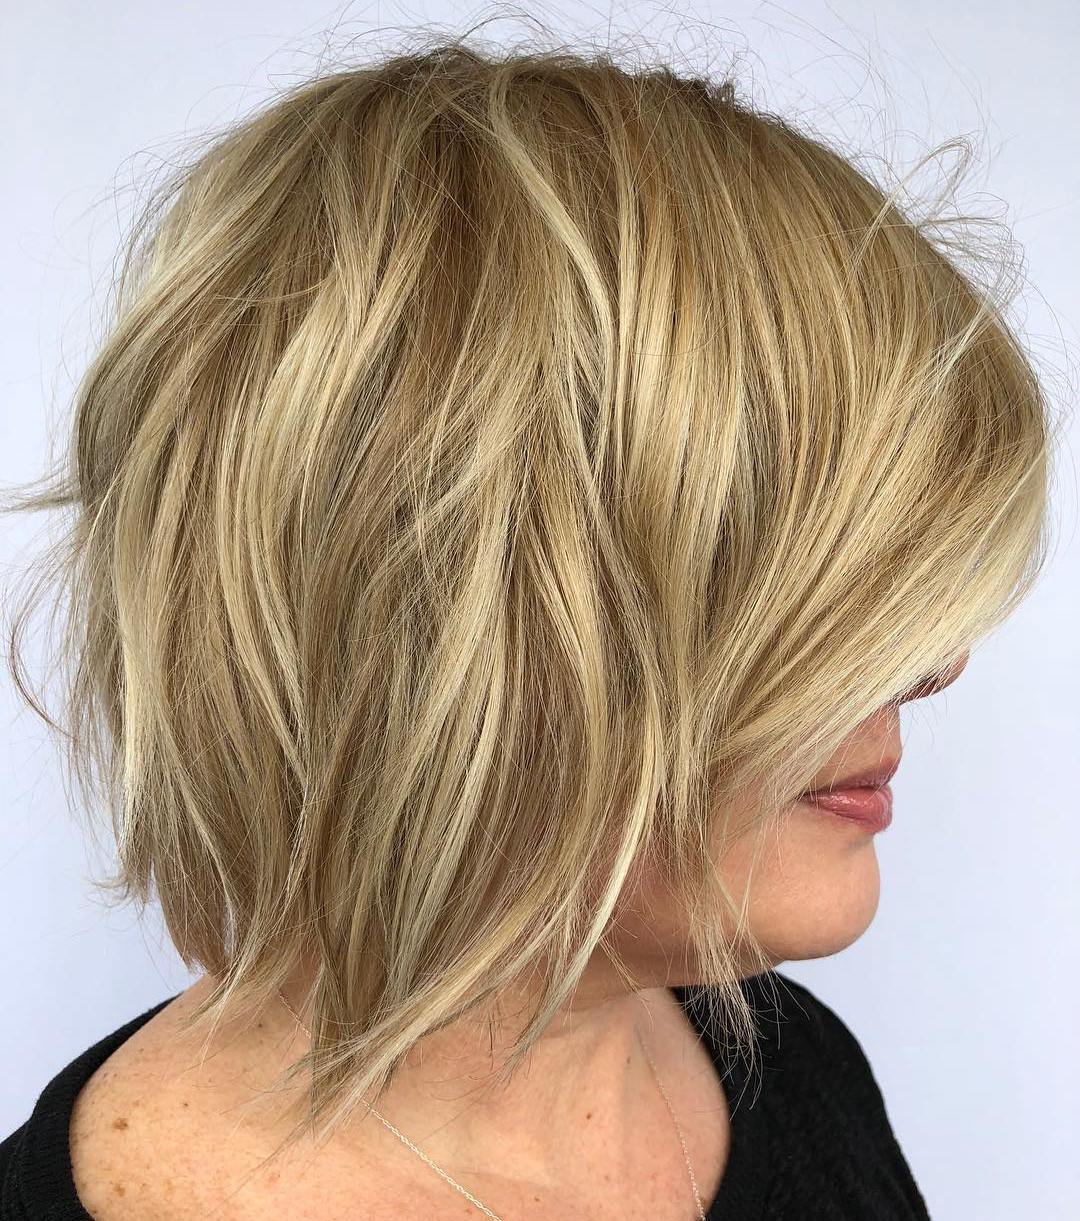 best hairstyles for women over 50 for 2019 - hair adviser